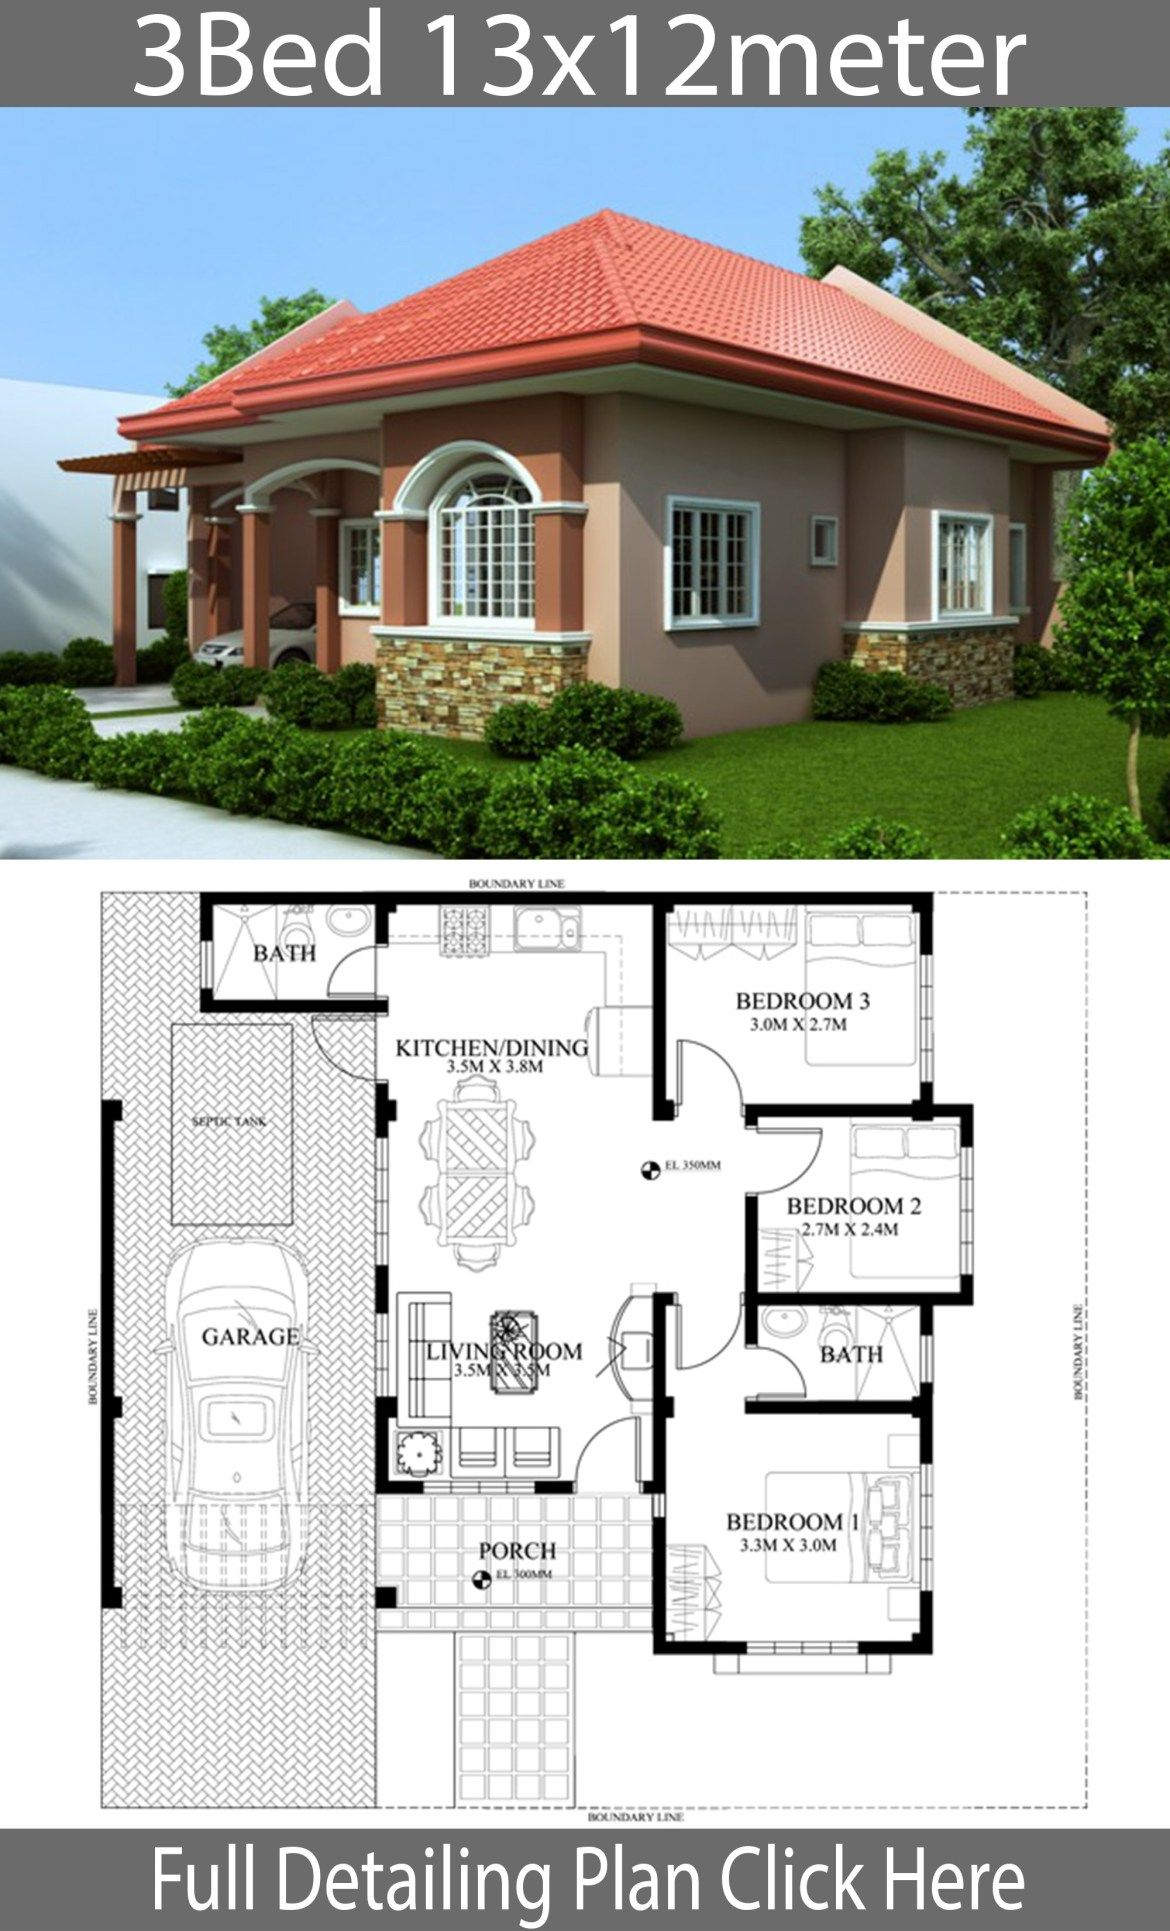 Home Design Plan 13x12m With 3 Bedrooms Home Planssearch Model House Plan House Construction Plan Affordable House Plans